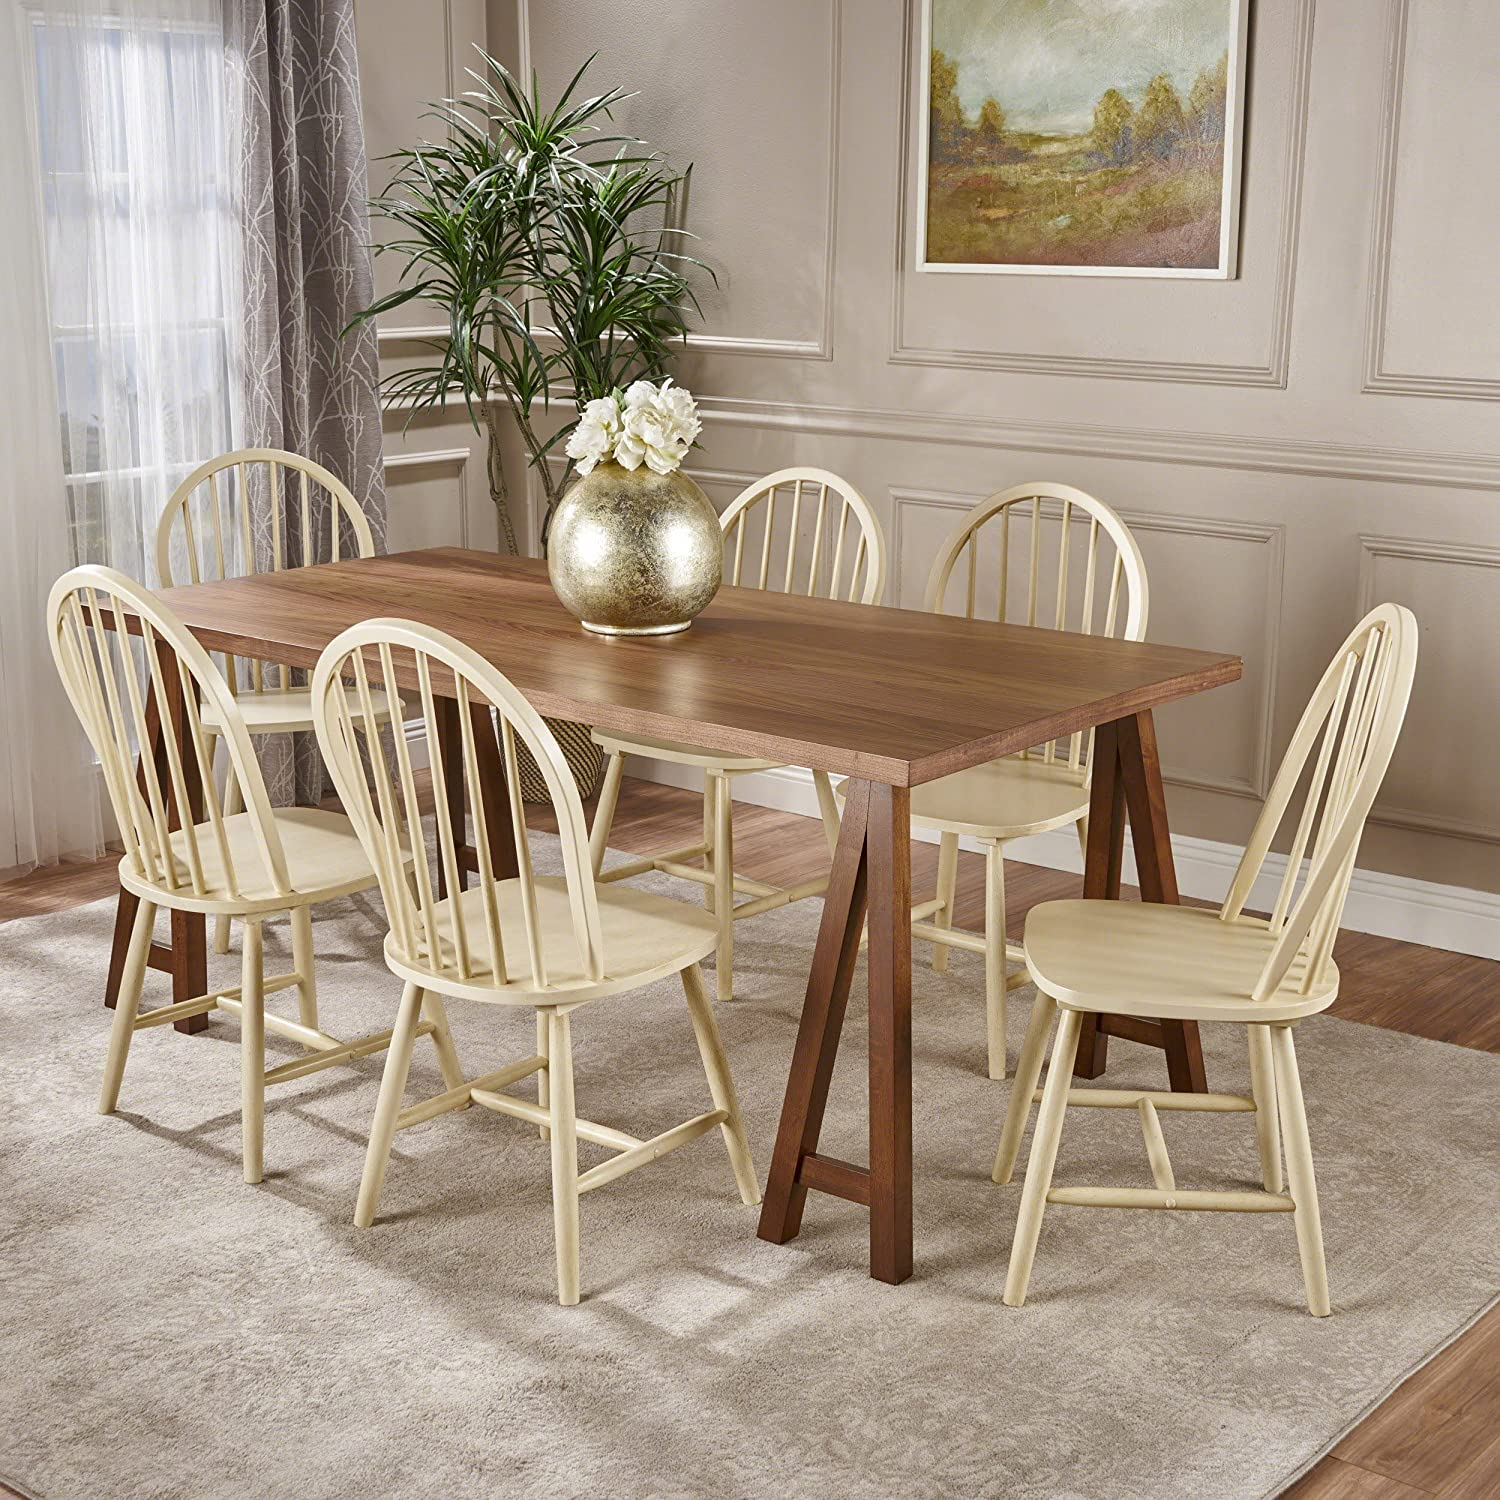 Amazon com amy farmhouse cottage 7 piece natural walnut faux wood dining set with antique white finished rubberwood chairs table chair sets